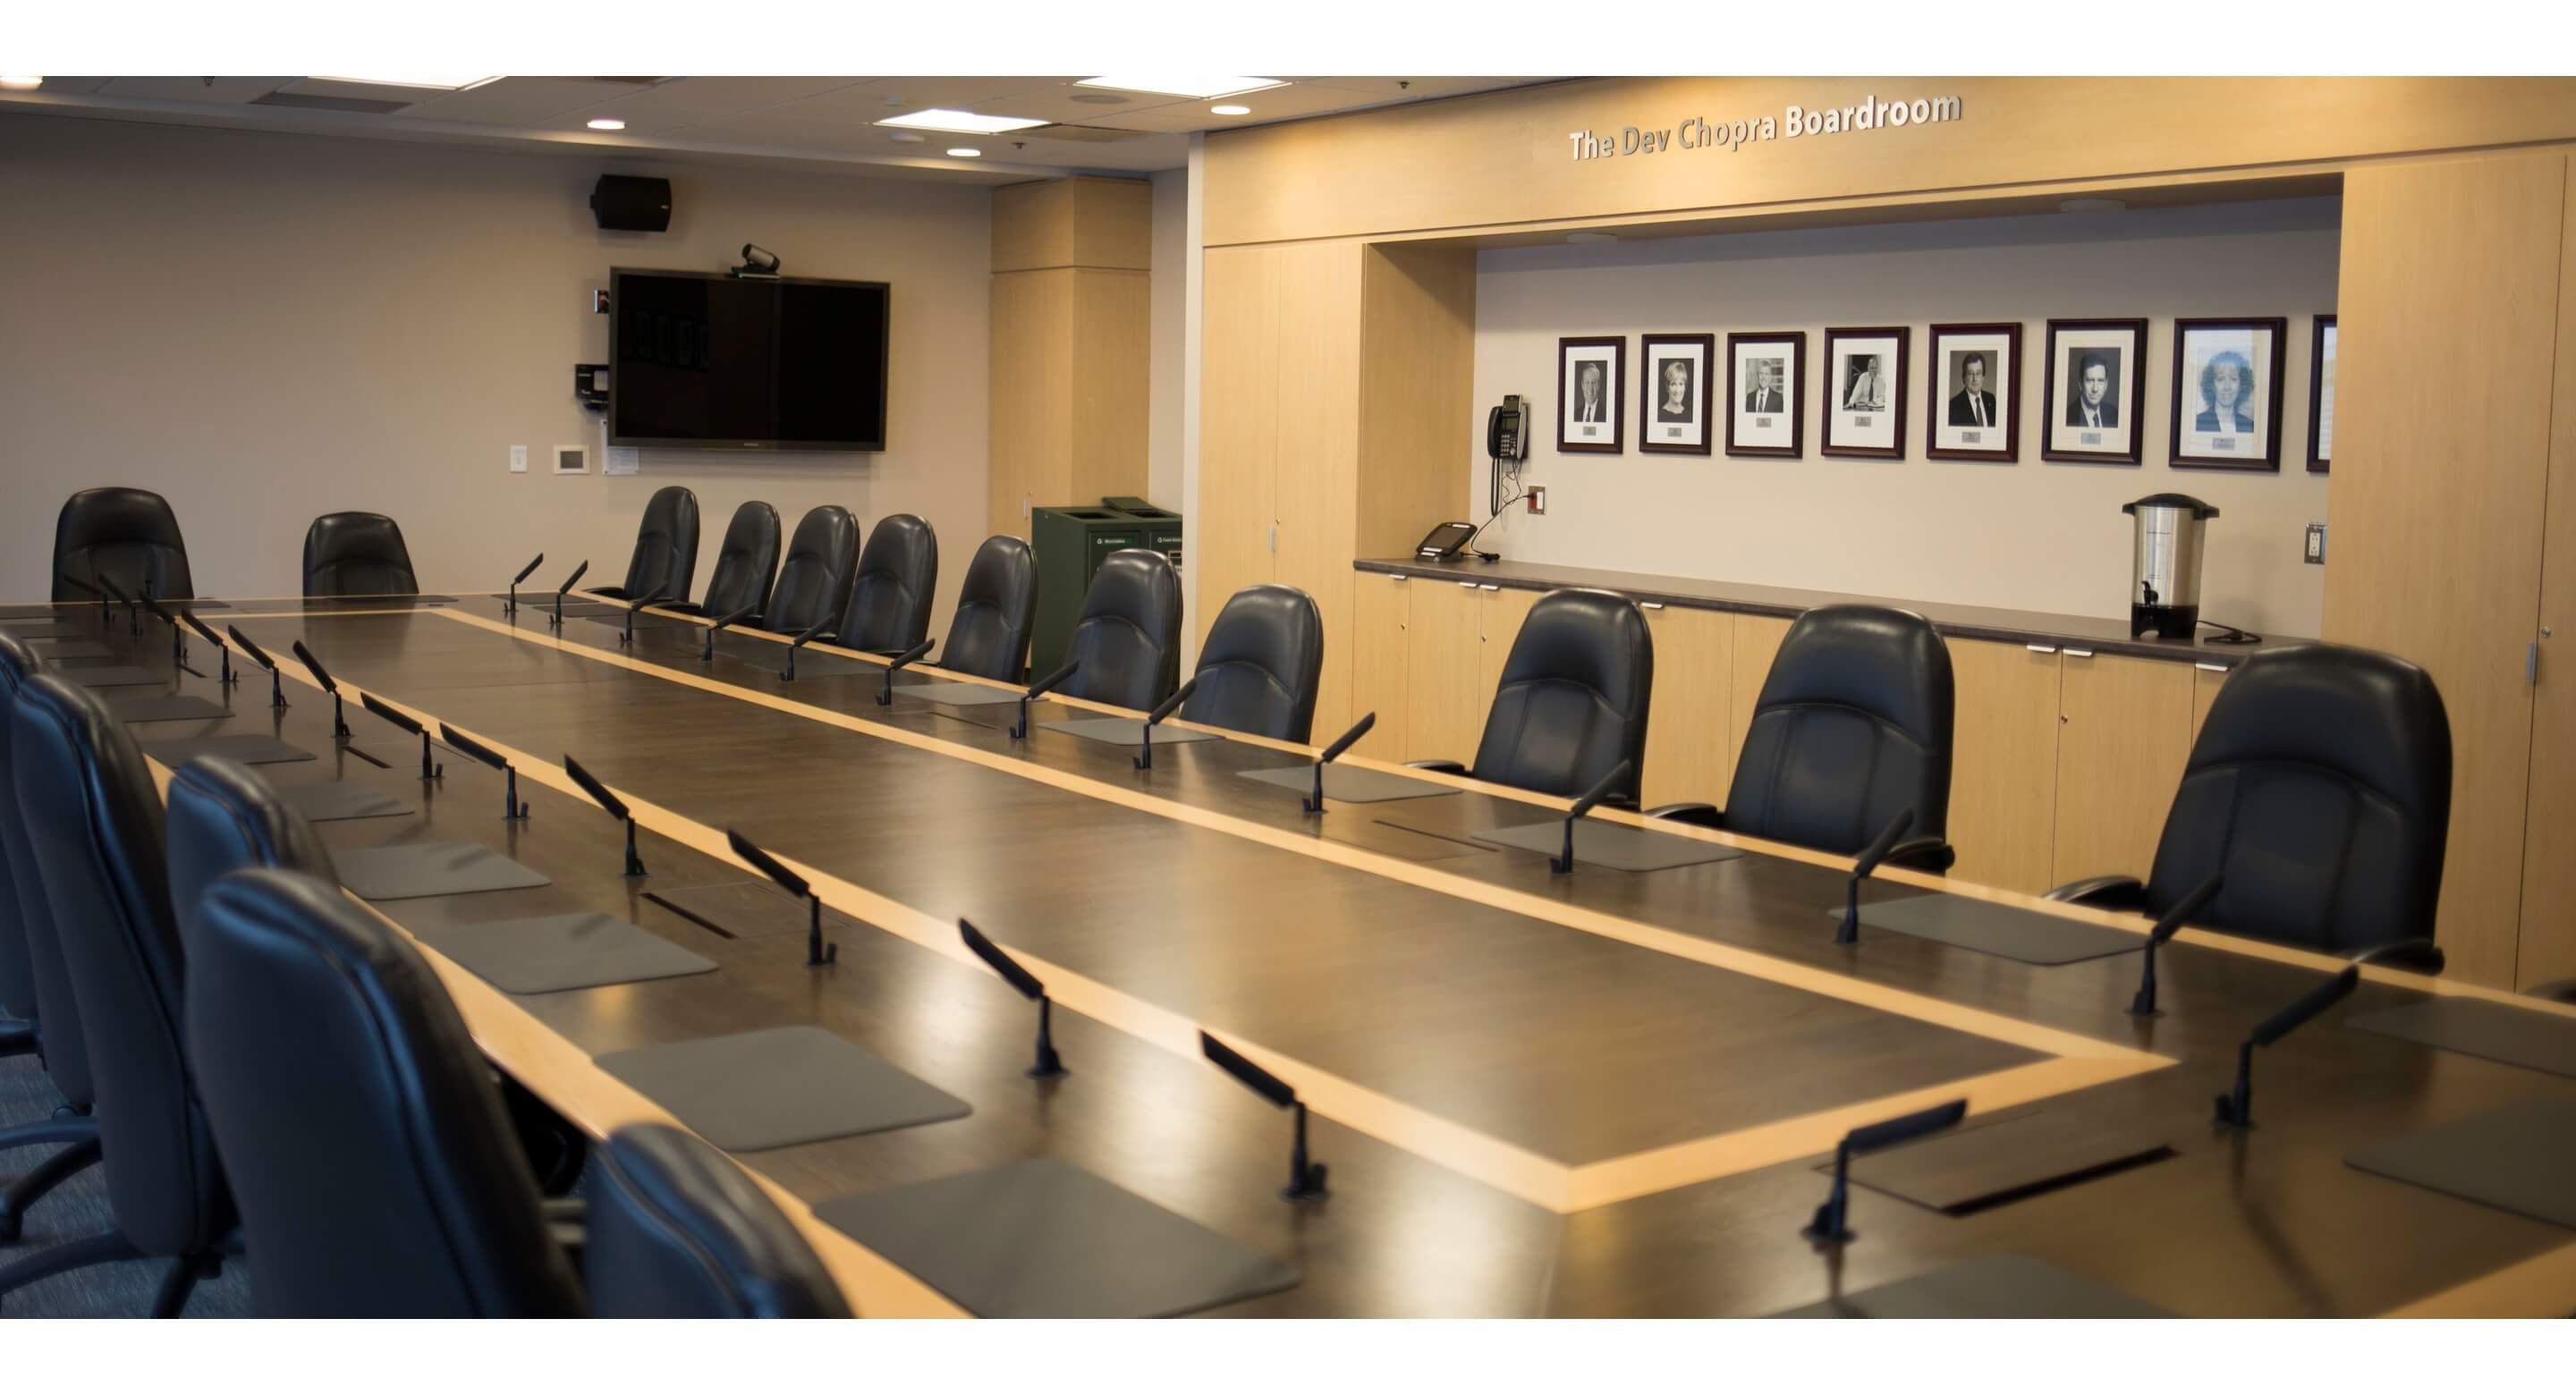 An image of the CAMH boardroom with a long table and many leather office chairs surrounding it.